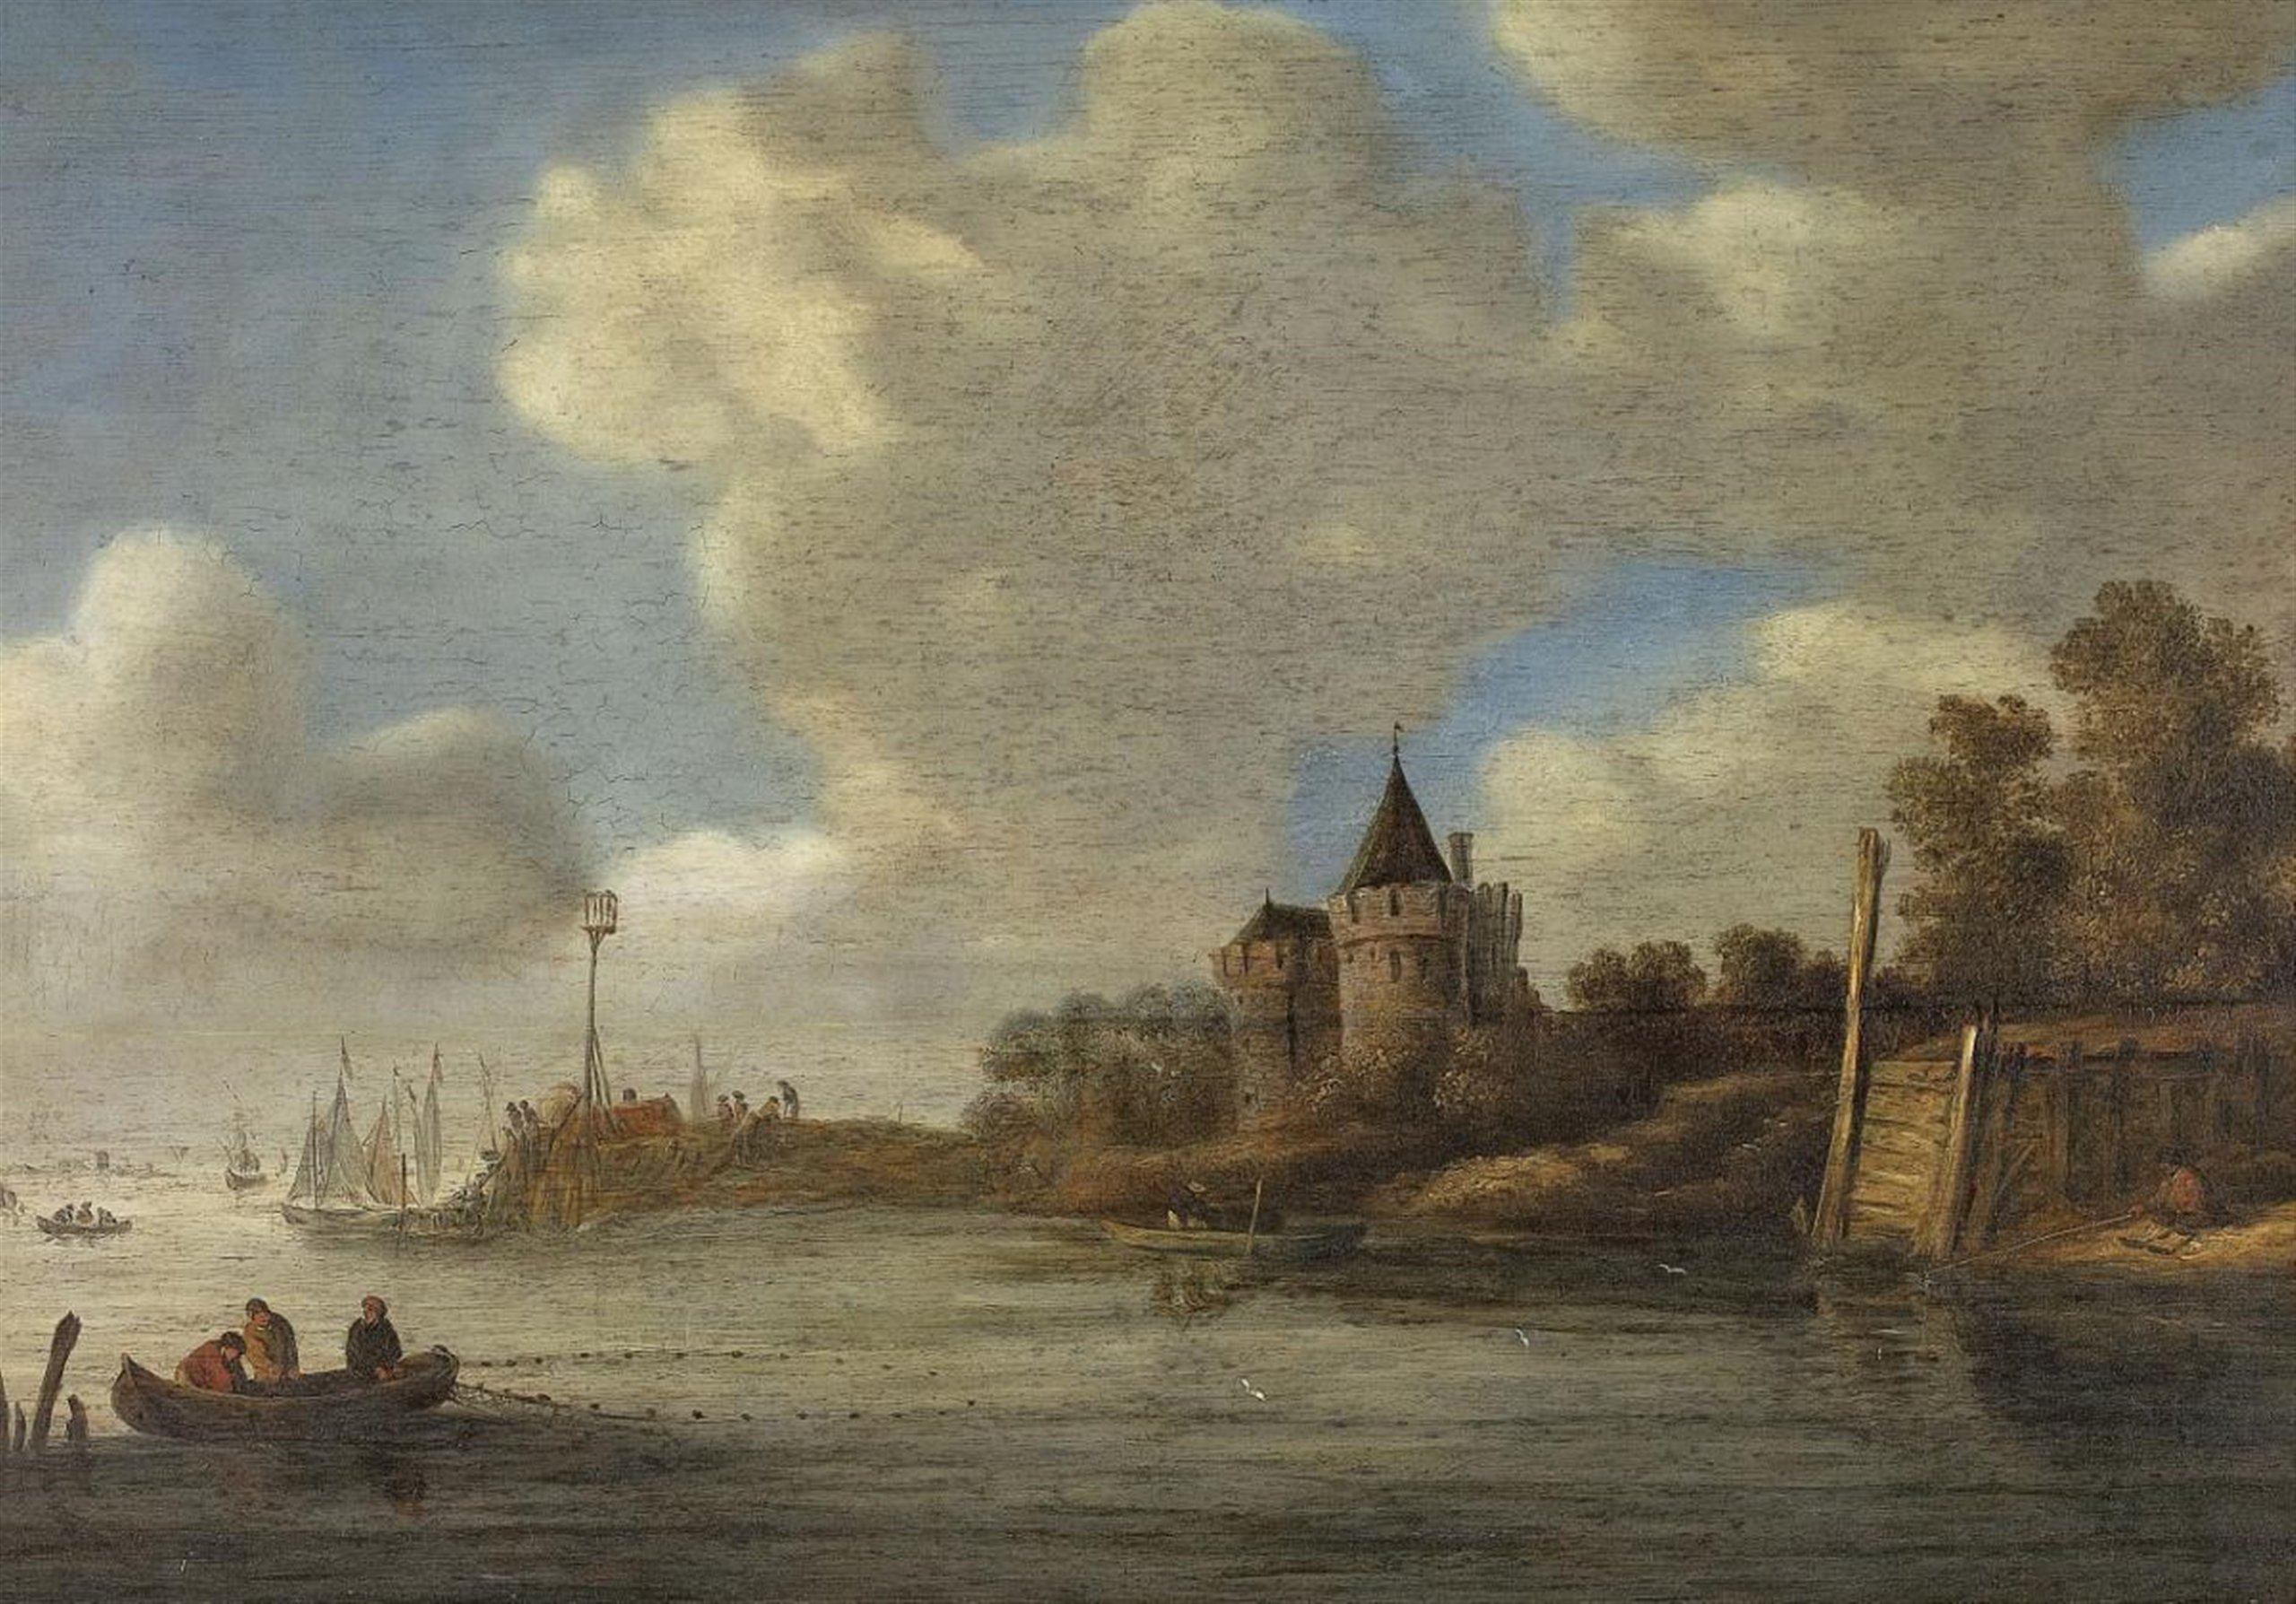 csm_Lempertz-985-25-Paintings-15th--19th-Centuries-Jan-van-Goyen-follower-of-RIVERLANDSCAPE-WITH-FISHE_ed73002278